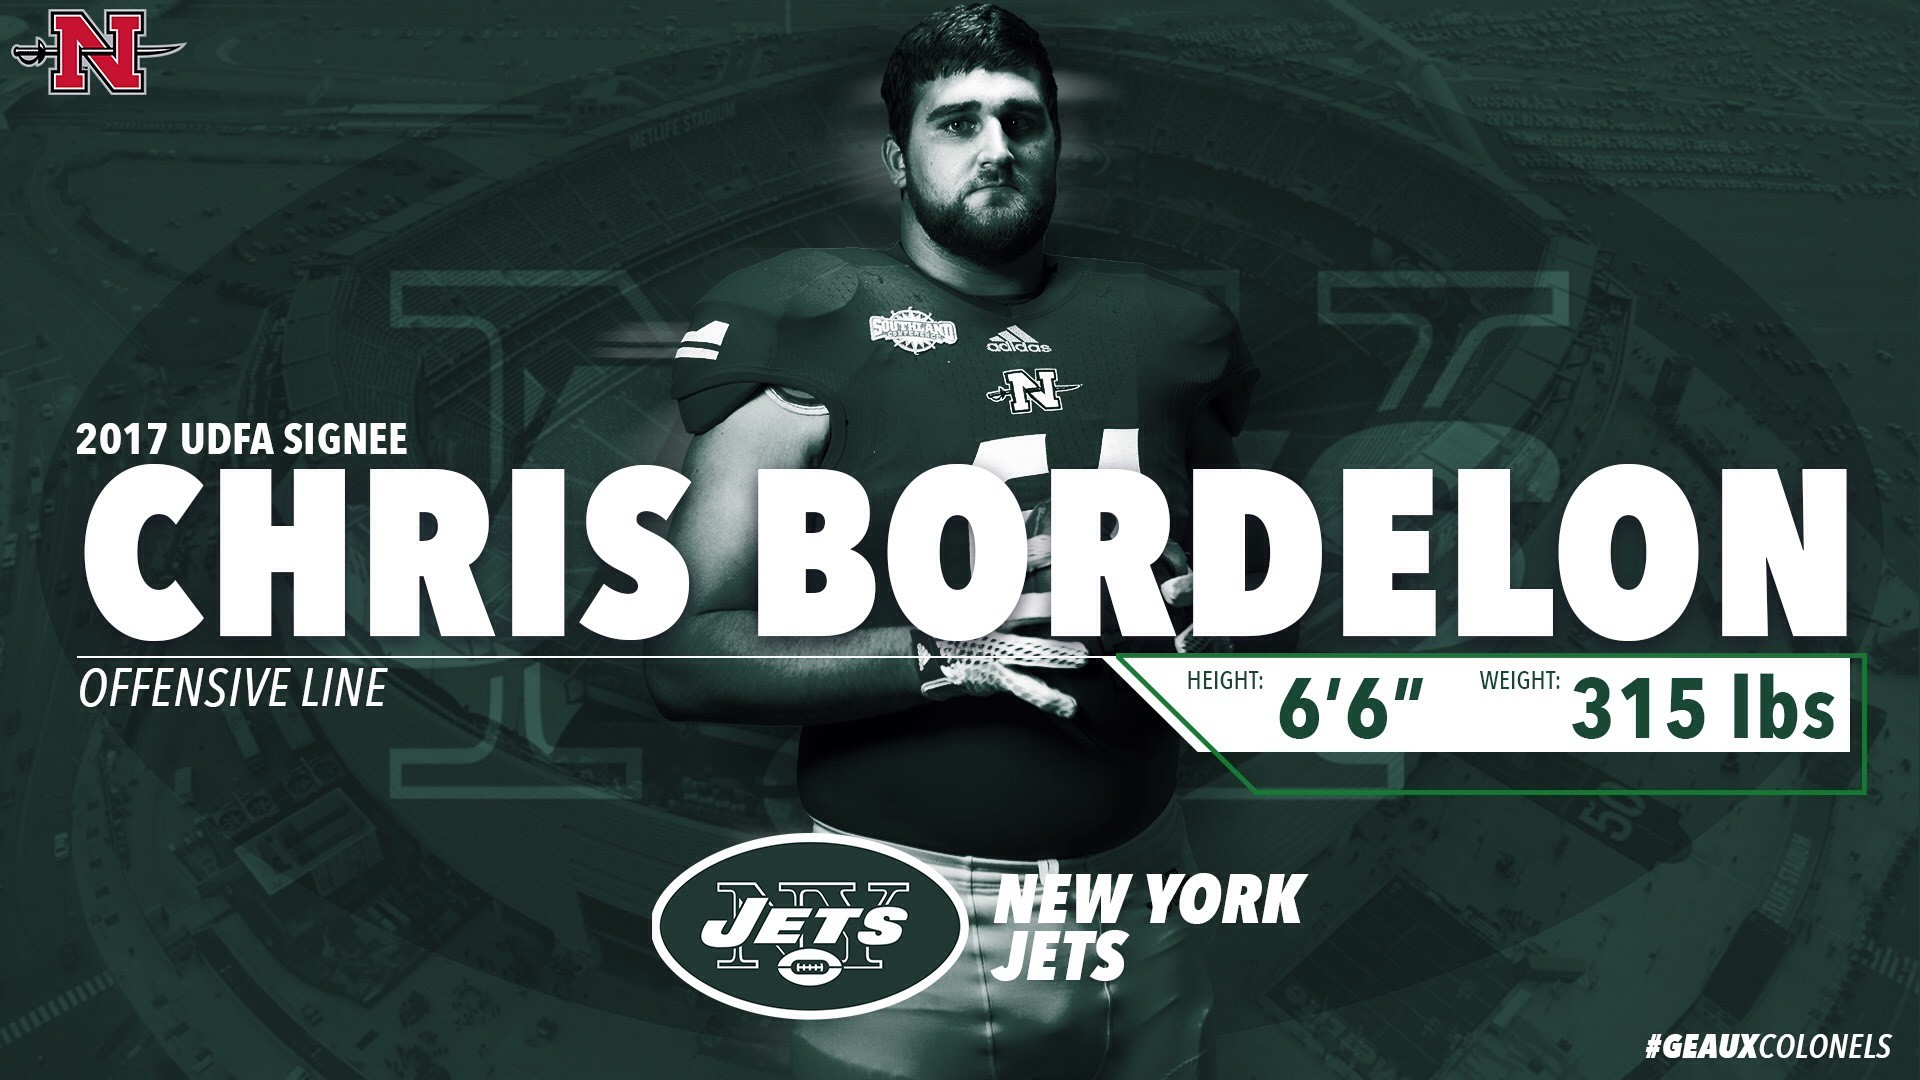 Bordelon signs with New York Jets